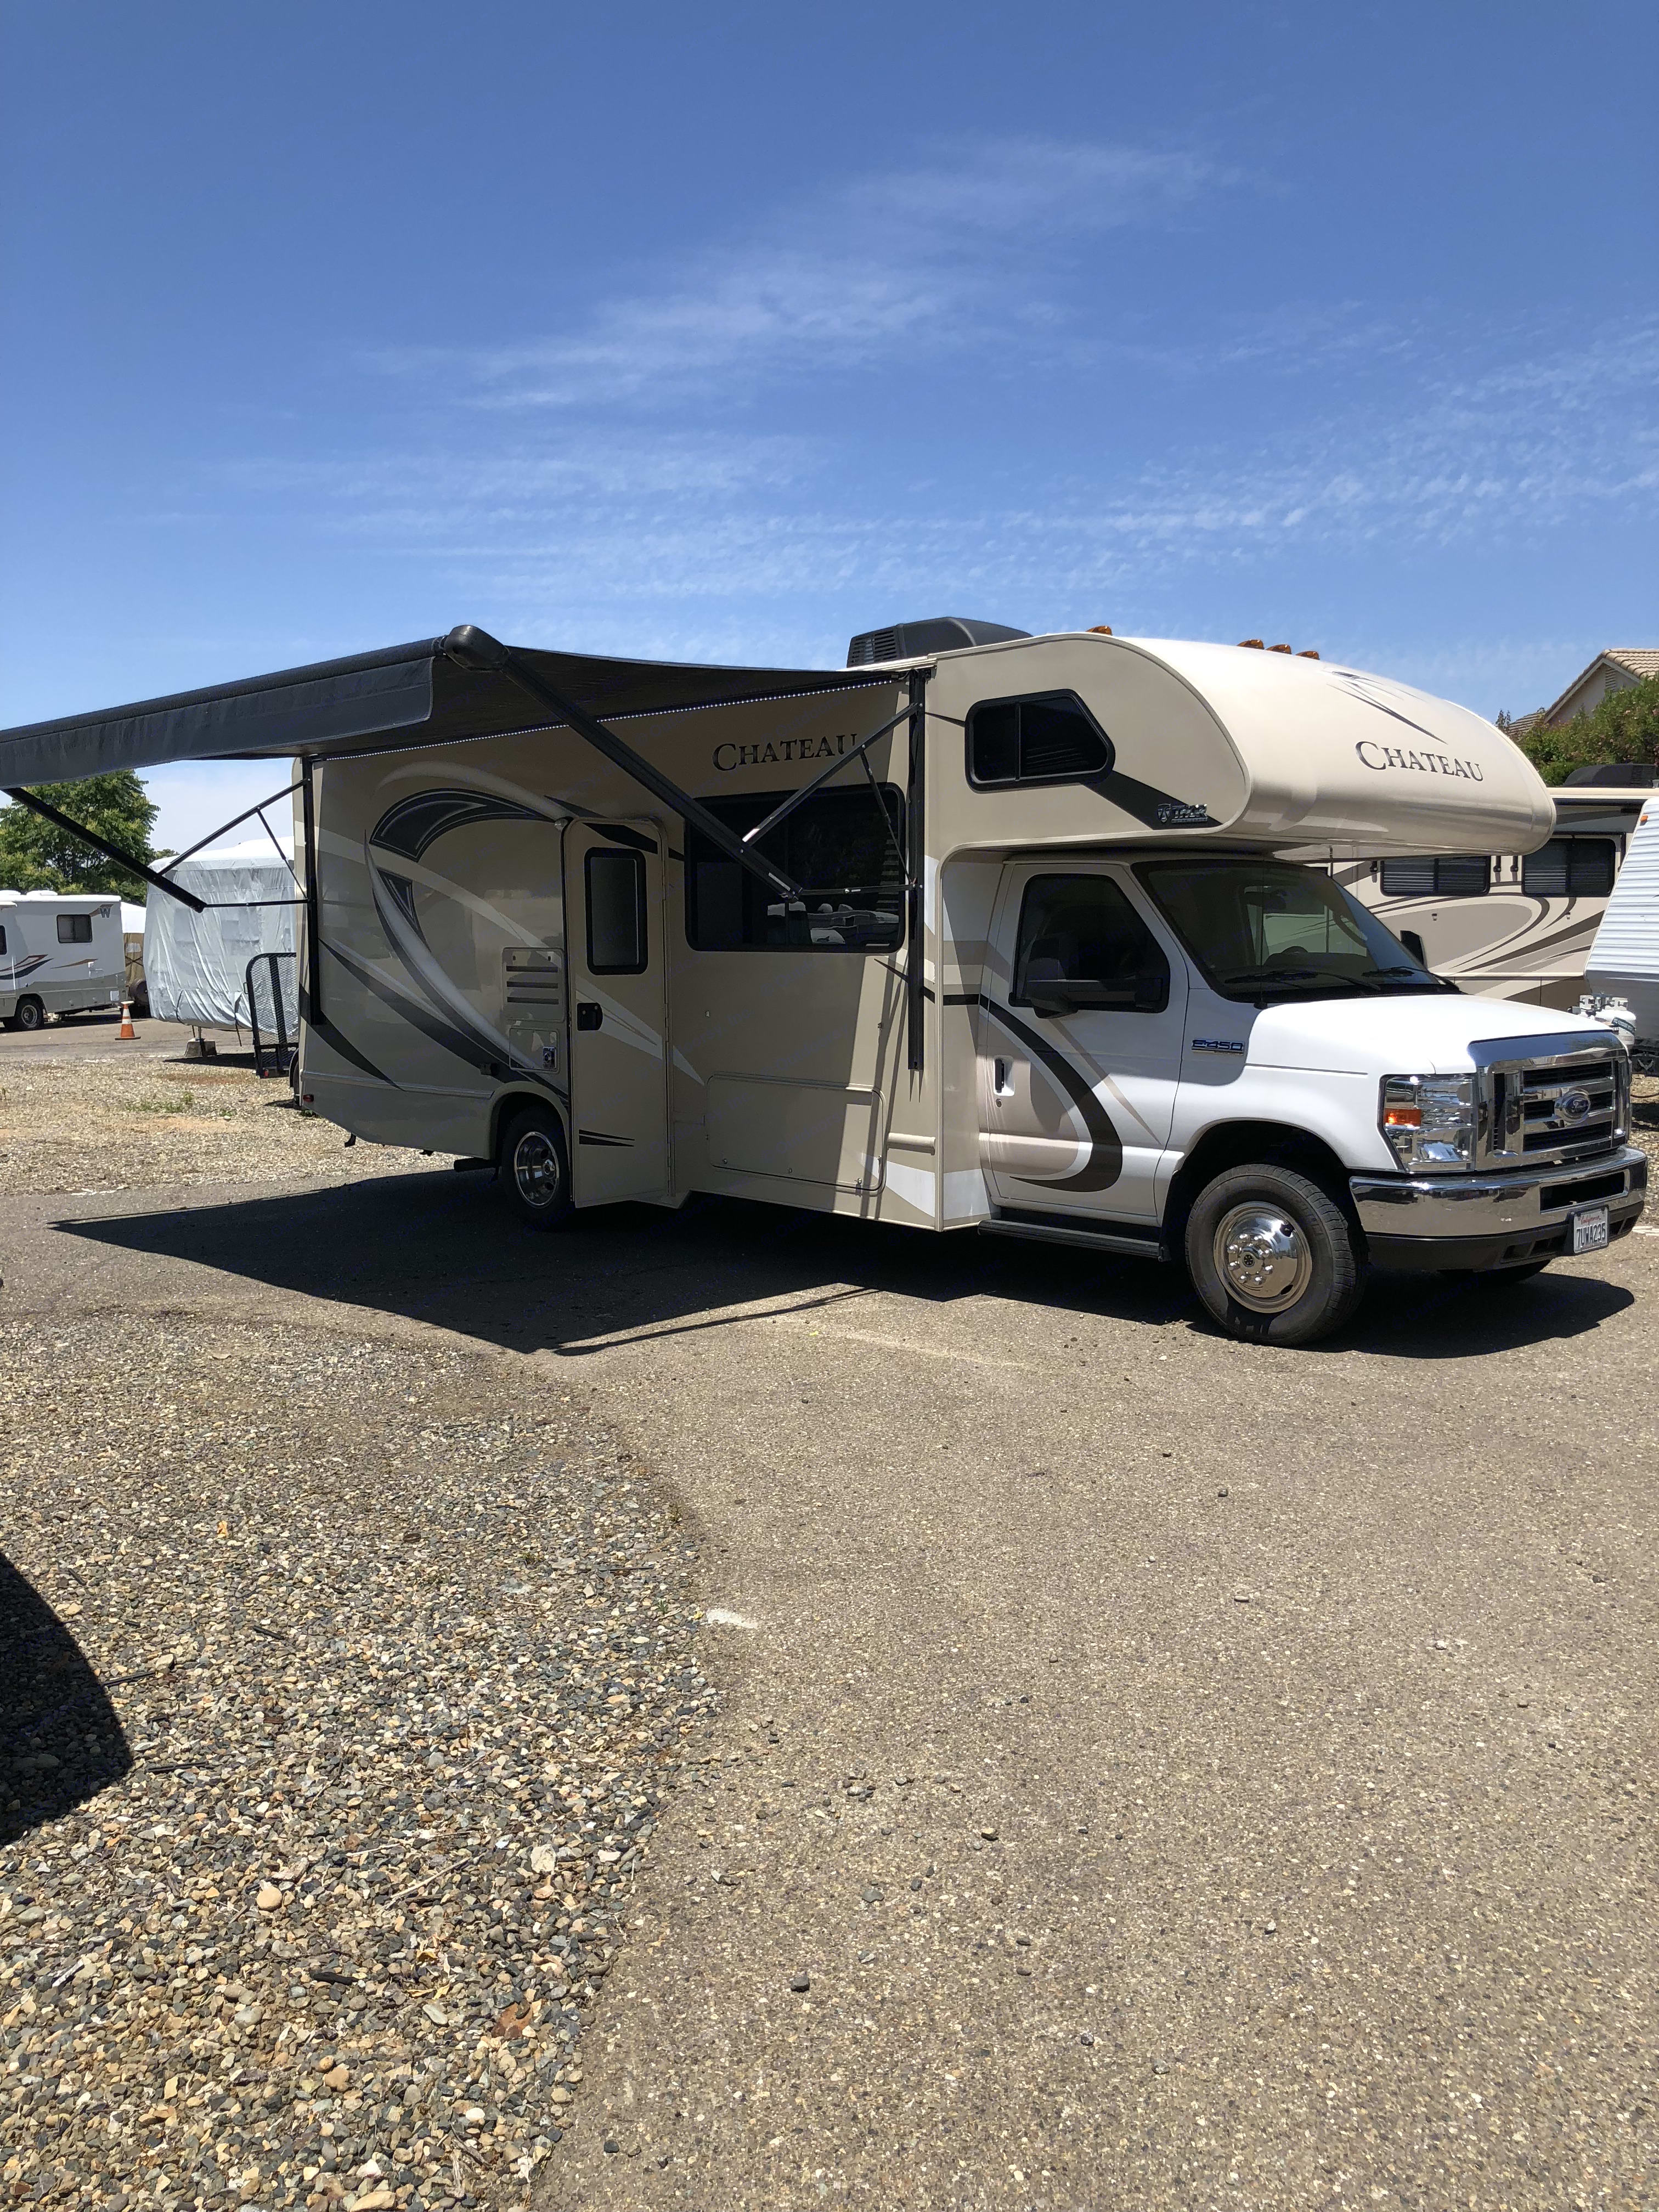 Right side, Awning out. Thor Motor Coach Chateau 2017